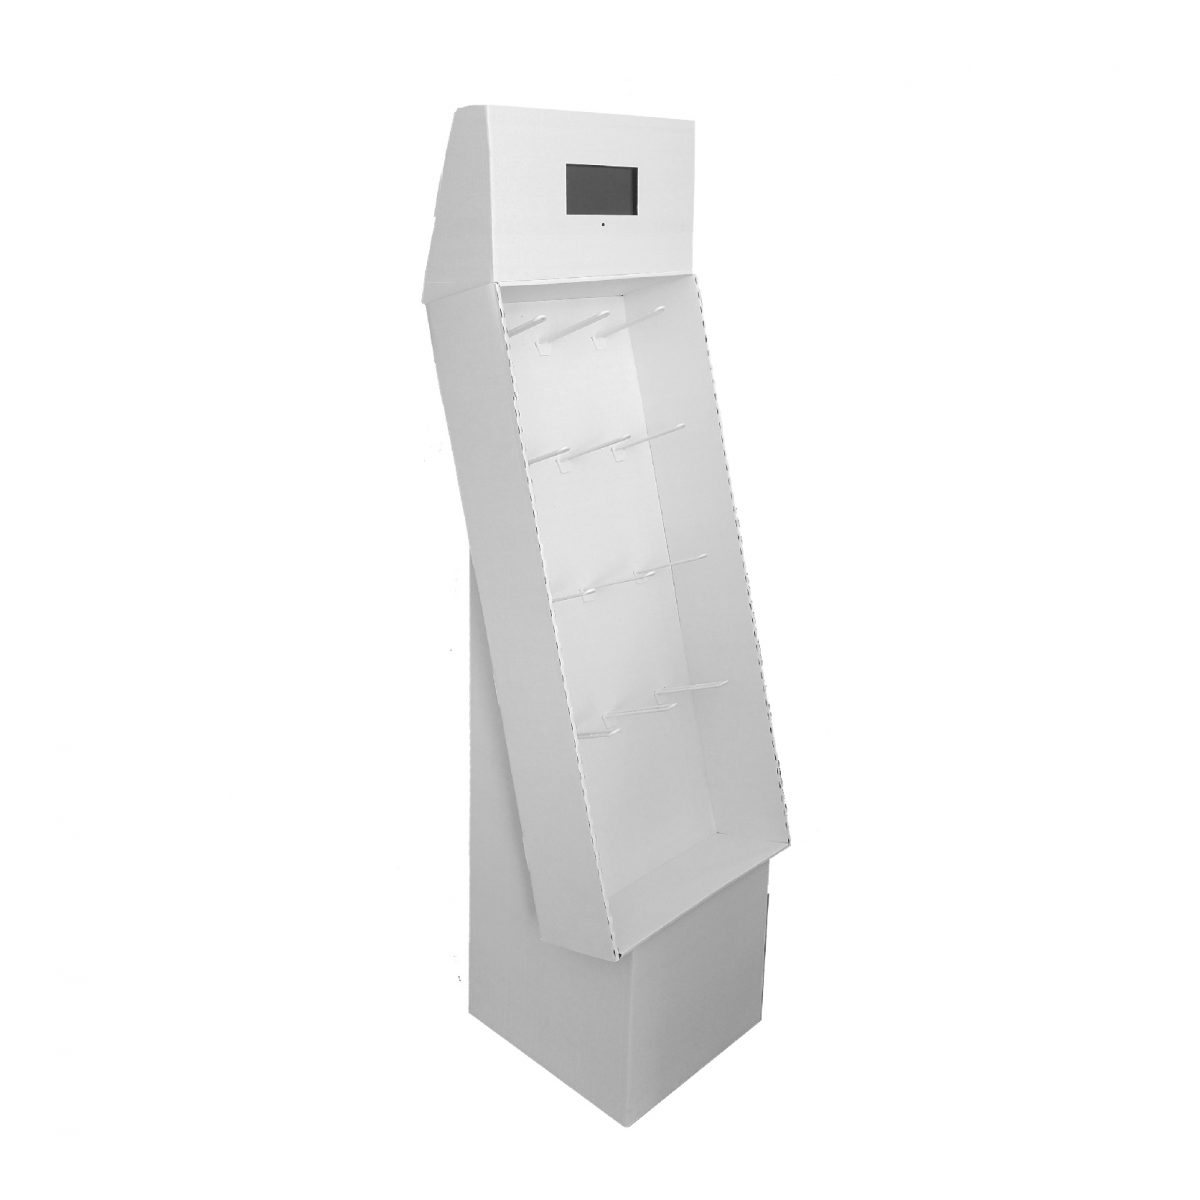 Cardboard floor peg display with header, placed on a base, with a screen in the header - 3d - white